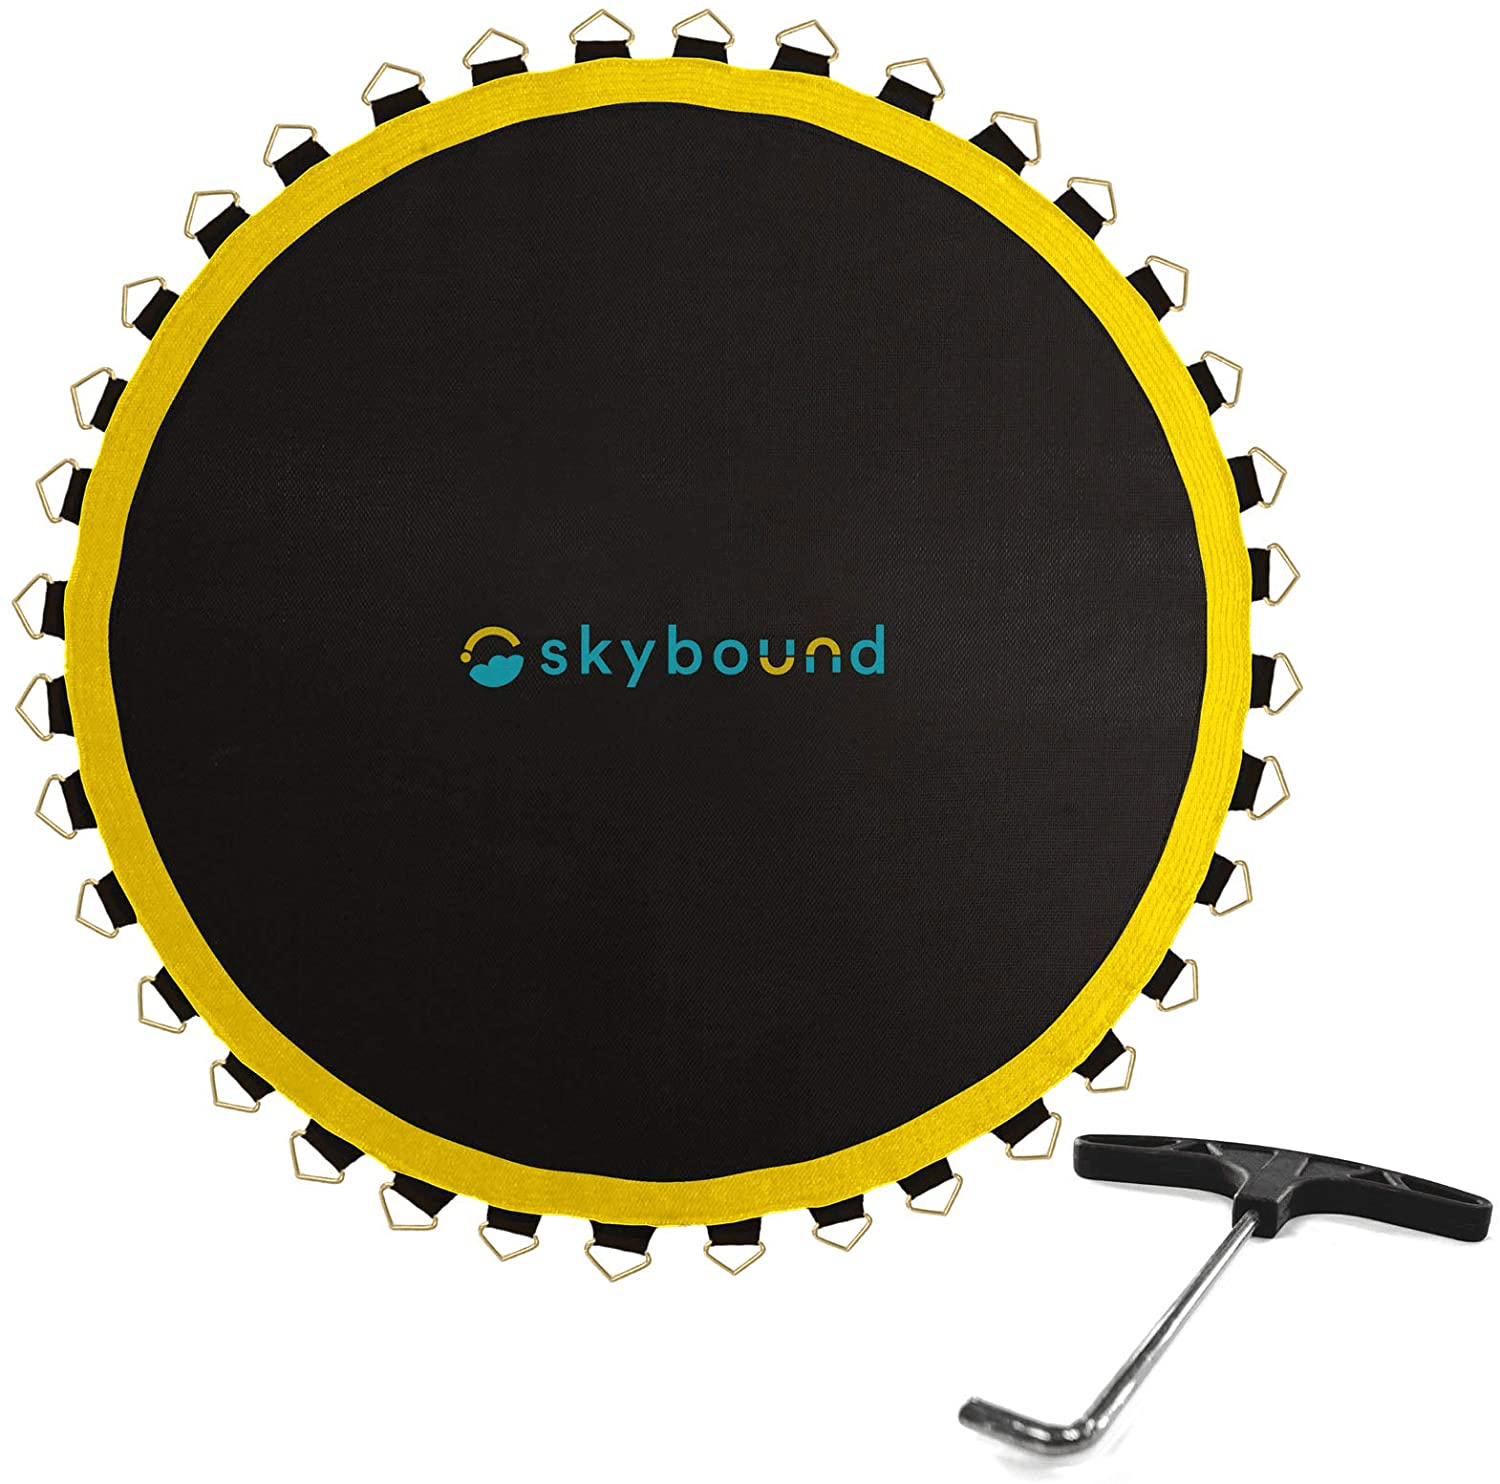 SkyBound Premium 14 Foot Trampoline Replacement Mat With Spring Tool